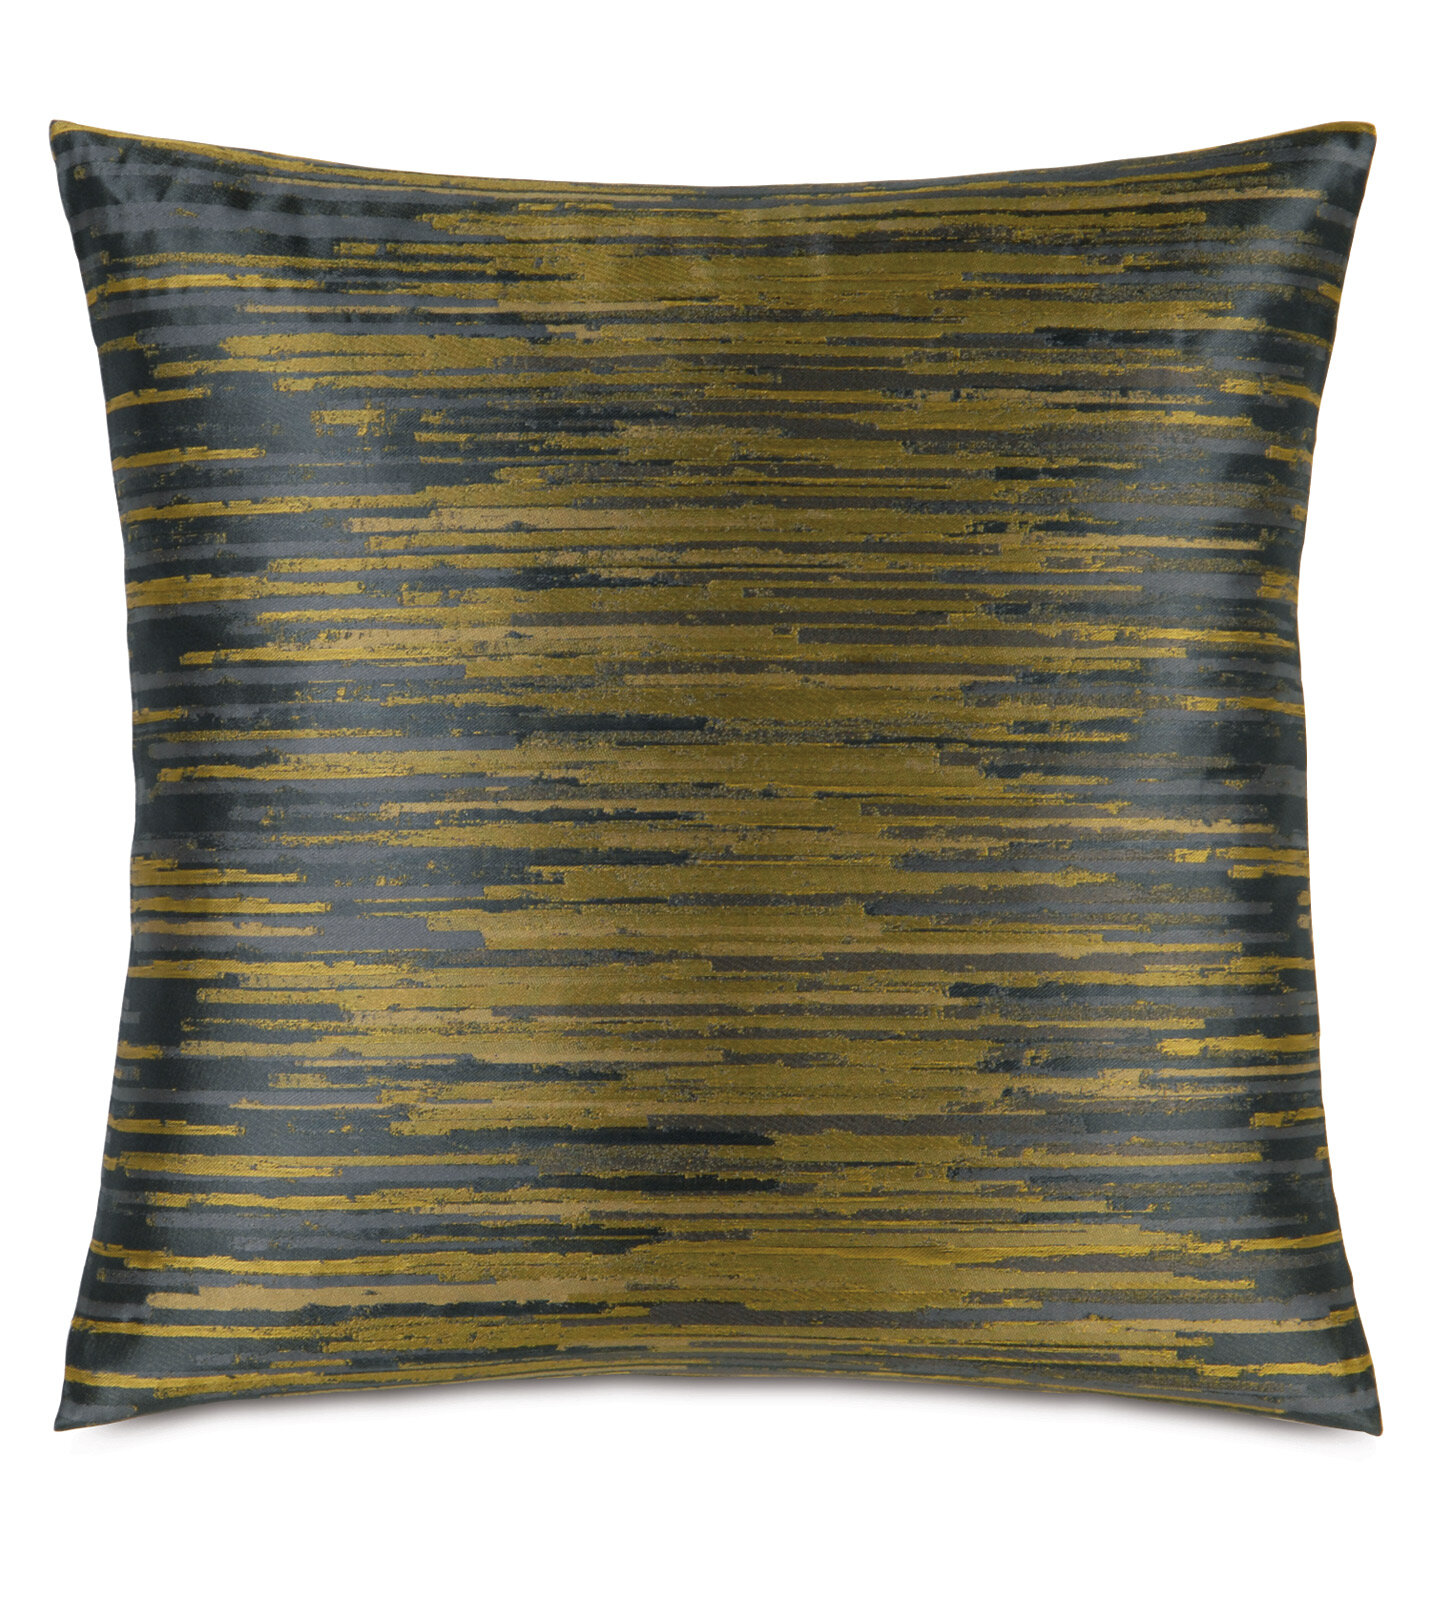 Single Piece Eastern Accents Throw Pillows You Ll Love In 2021 Wayfair